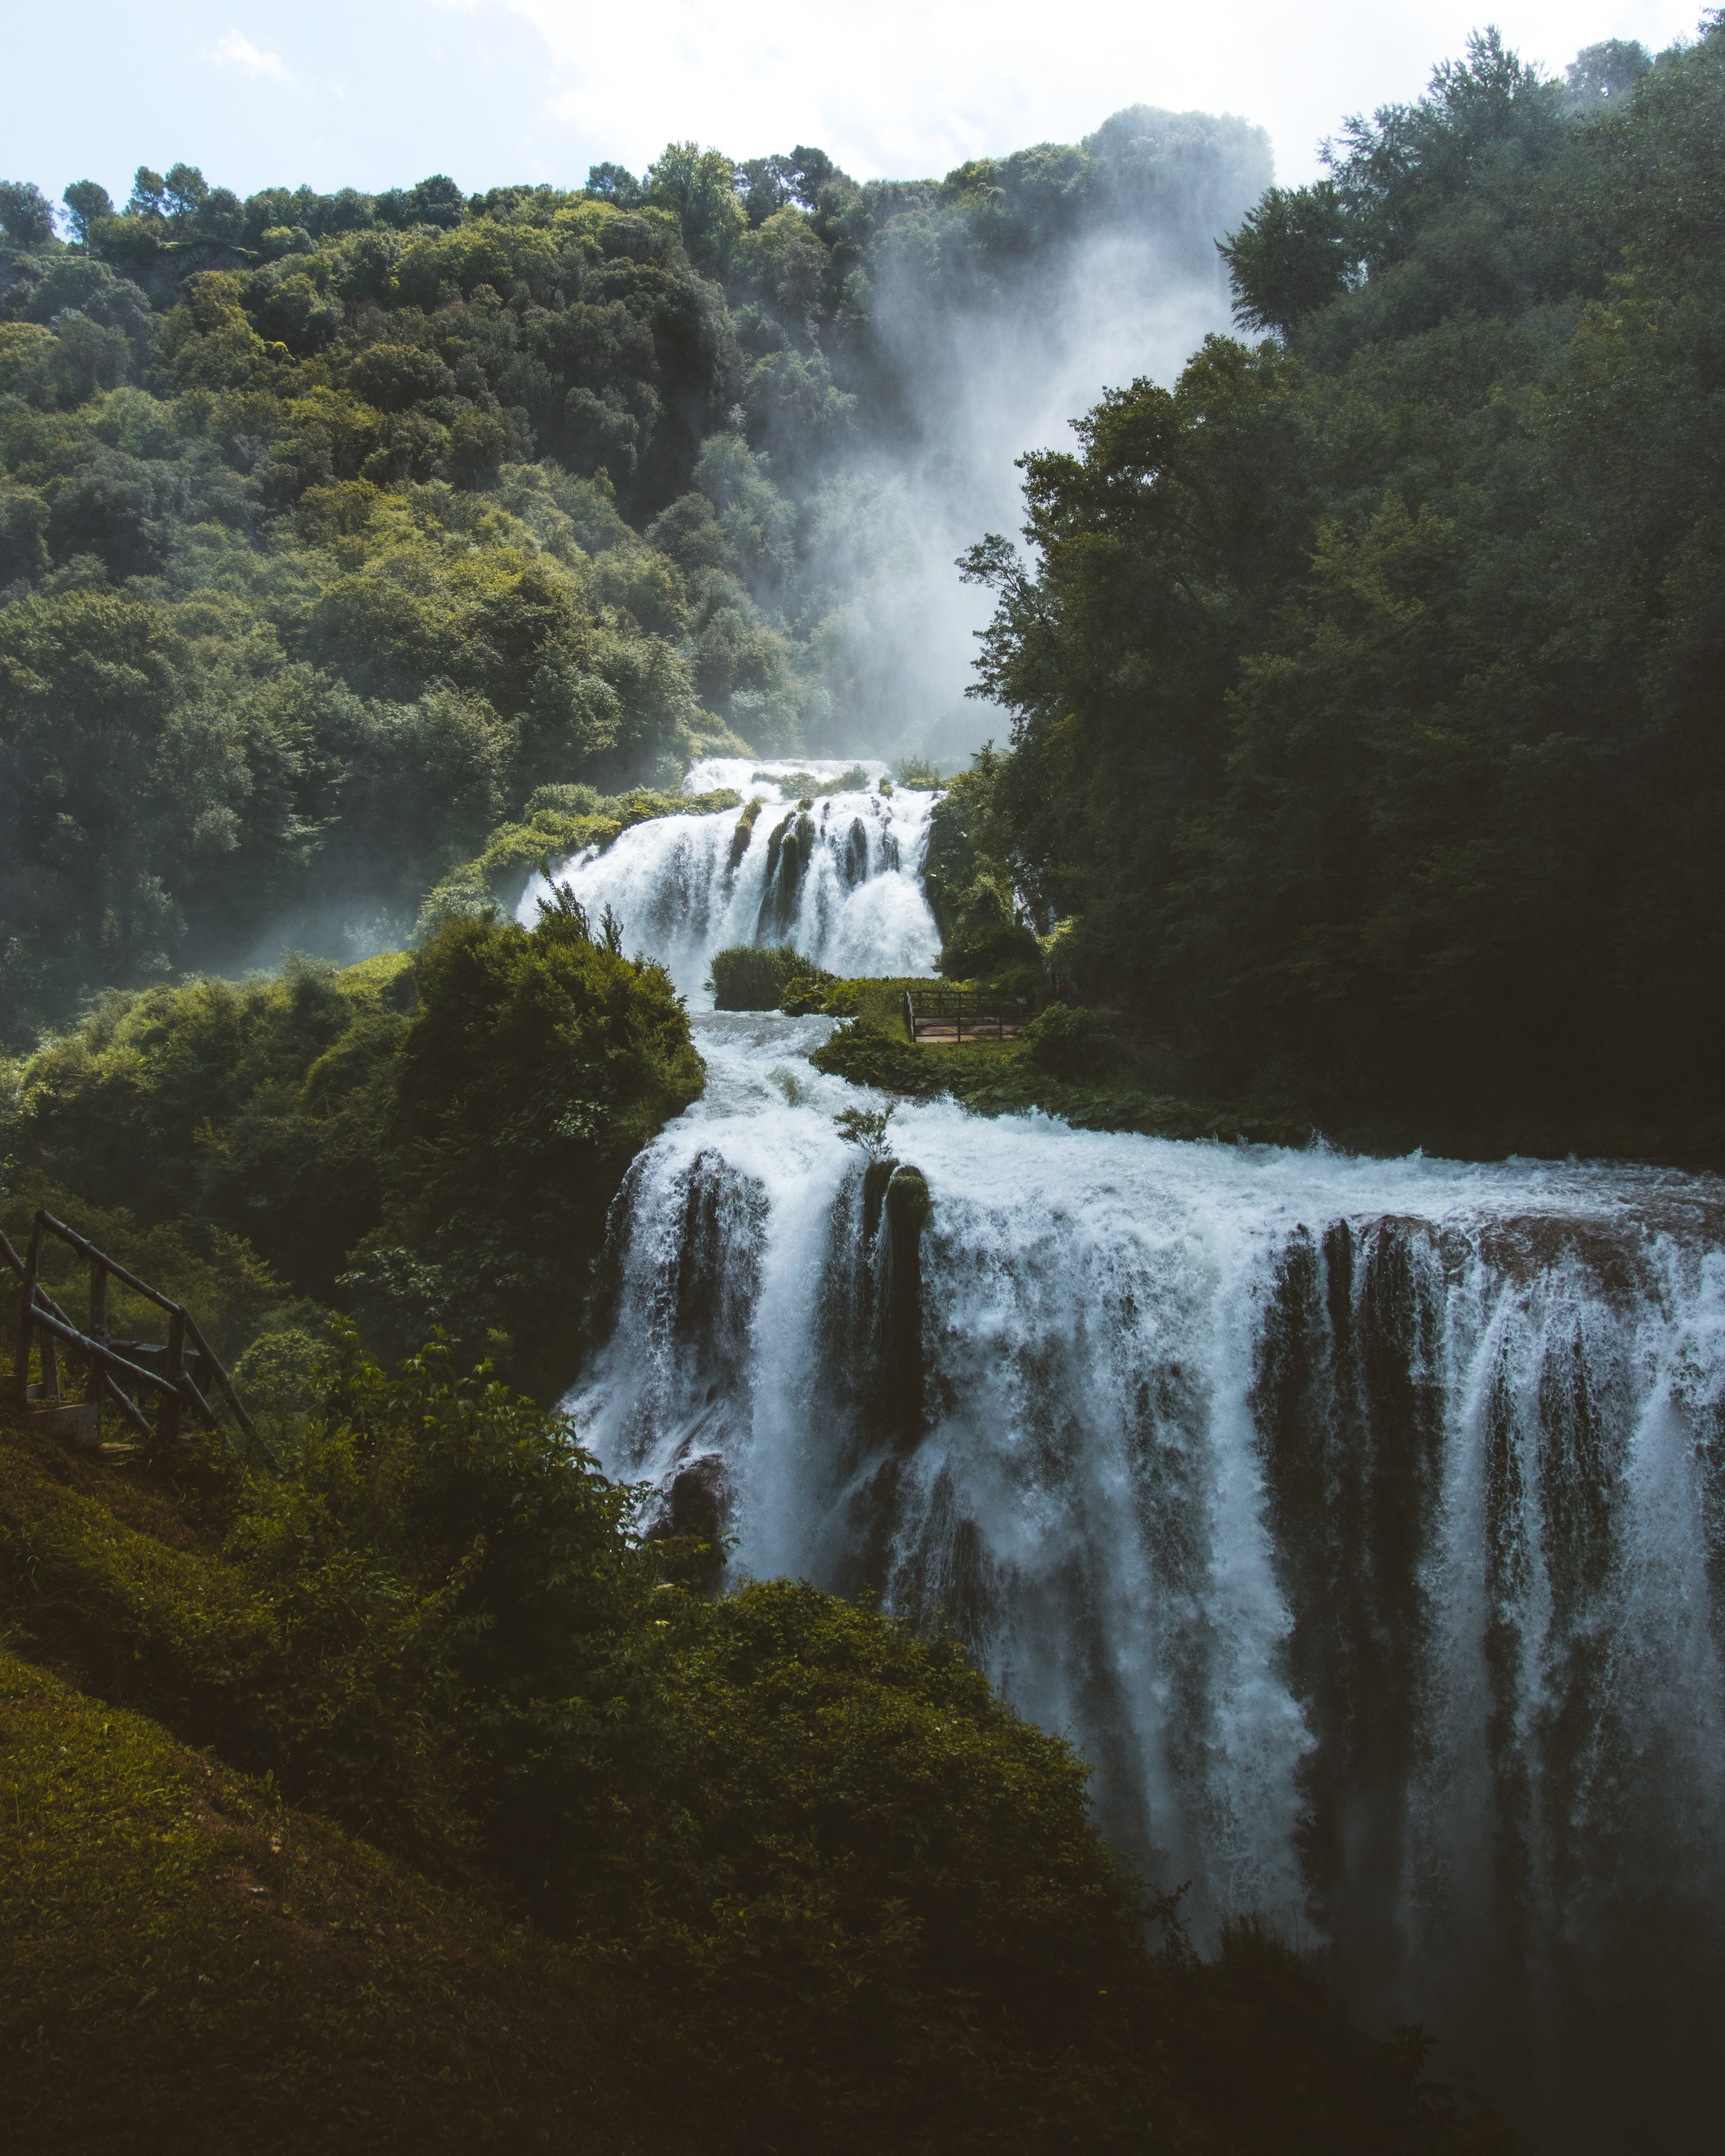 88156 download wallpaper Nature, Waterfall, Forest, Trees, Wildlife, Landscape screensavers and pictures for free